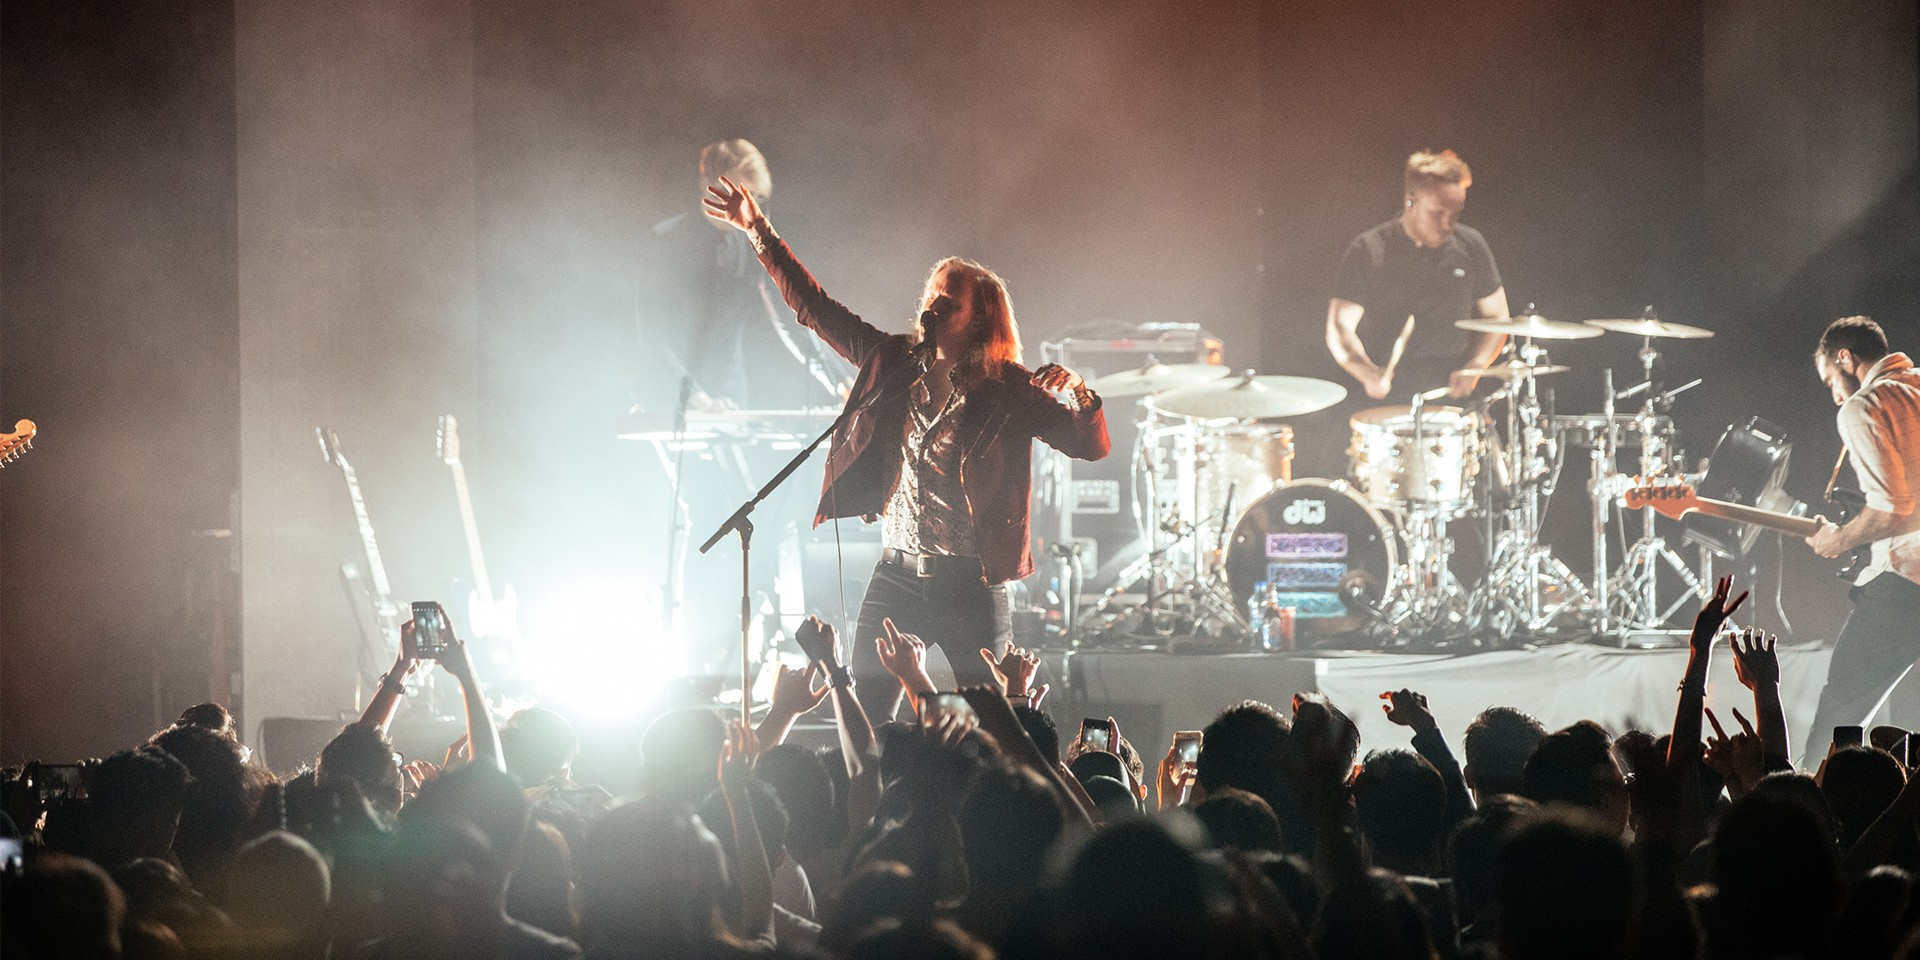 GIG REPORT: Two Door Cinema Club play their biggest venue yet in Singapore